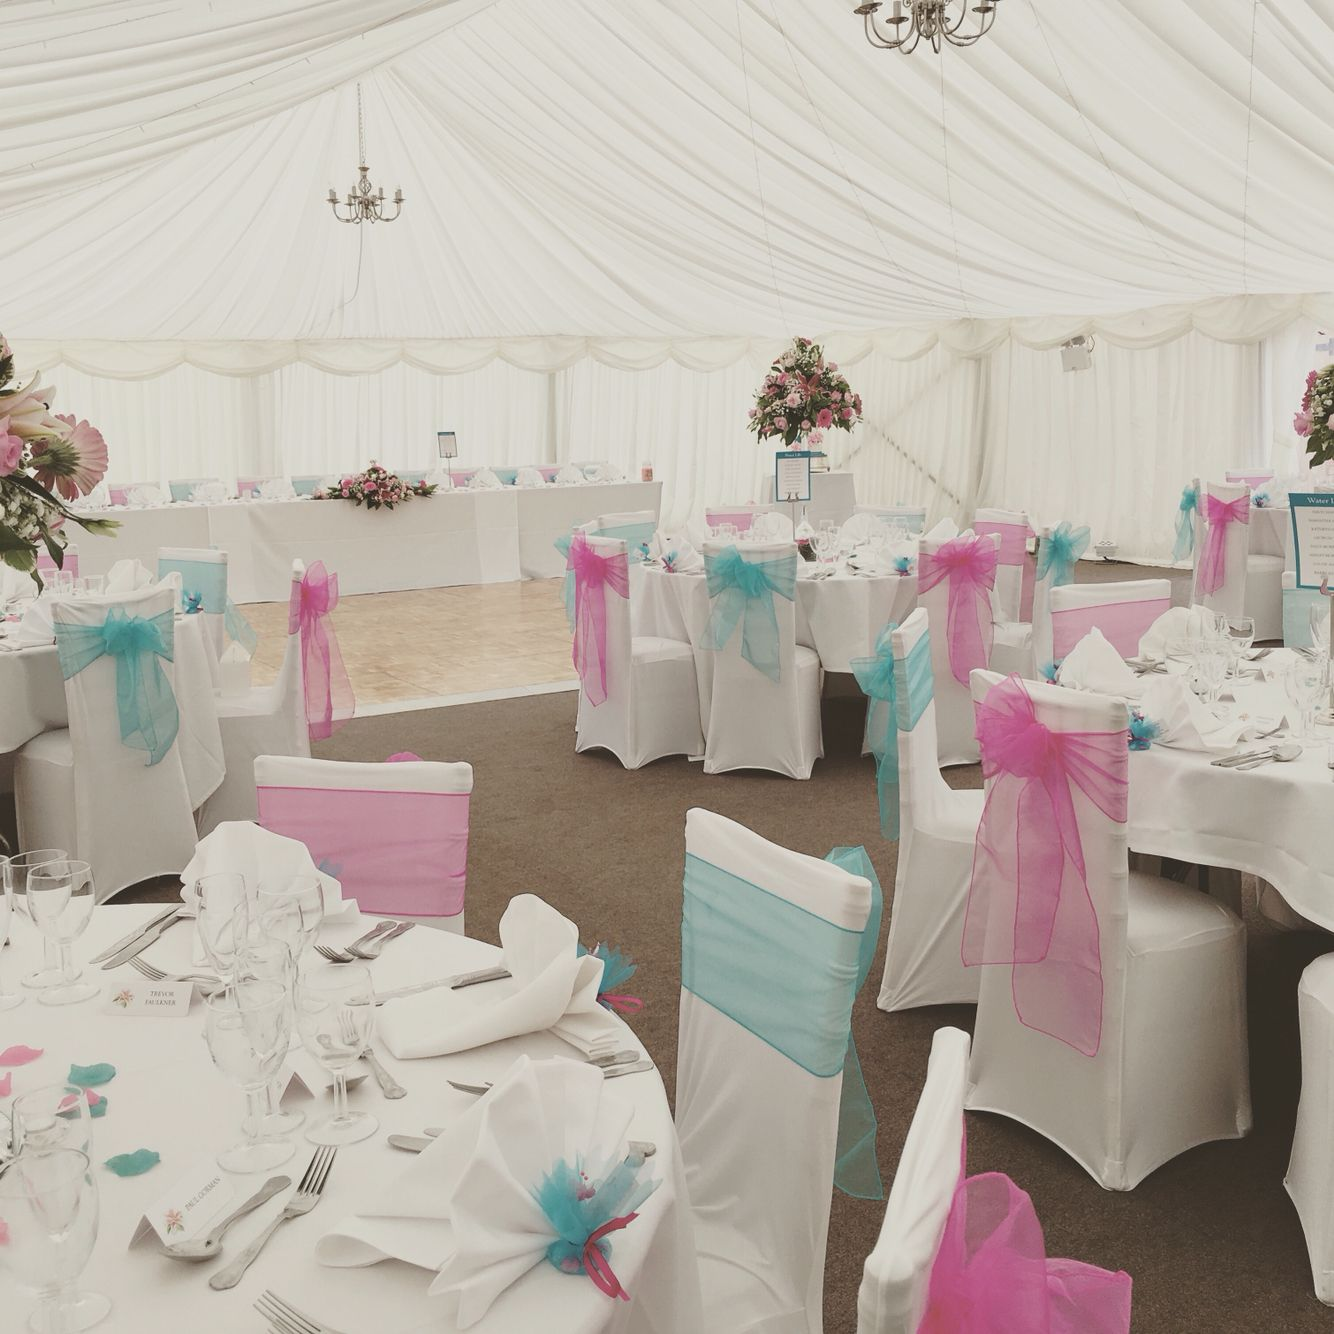 Chair Covers Telford Yoga Instructor Training Terquoise And Fusica Organza By Timeless Cover Hire The Shropshire Marquee